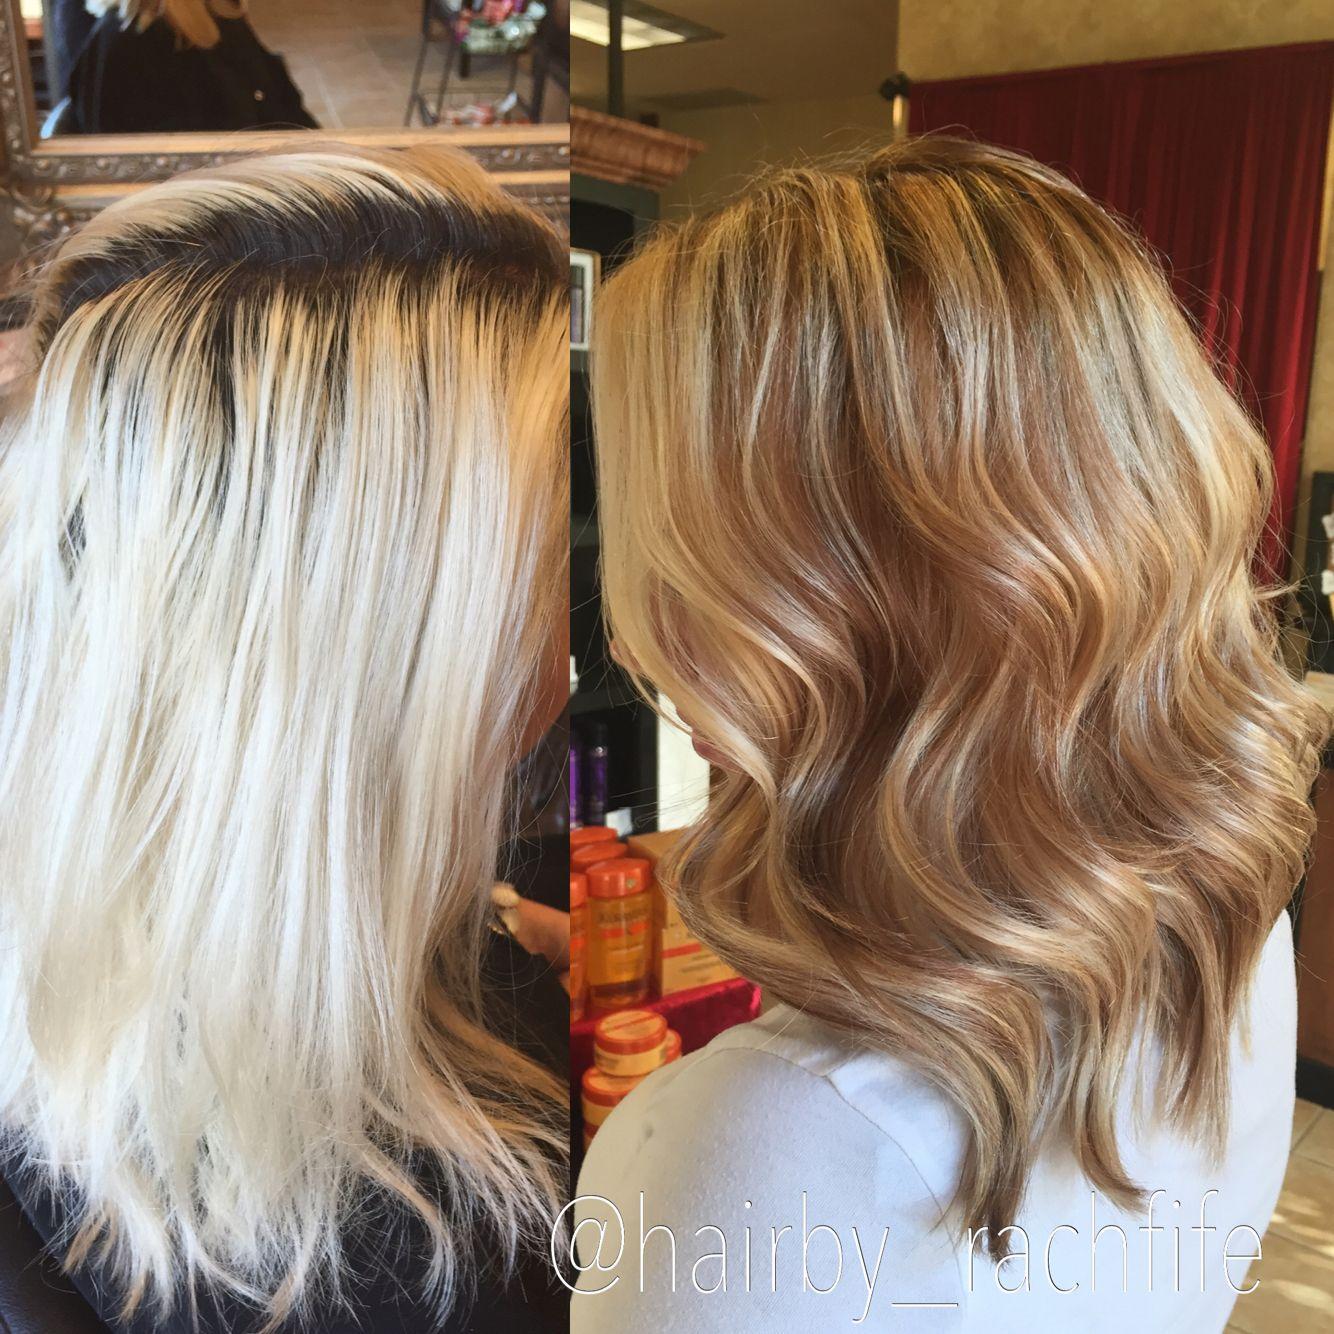 corrective color before and after platinum blonde to